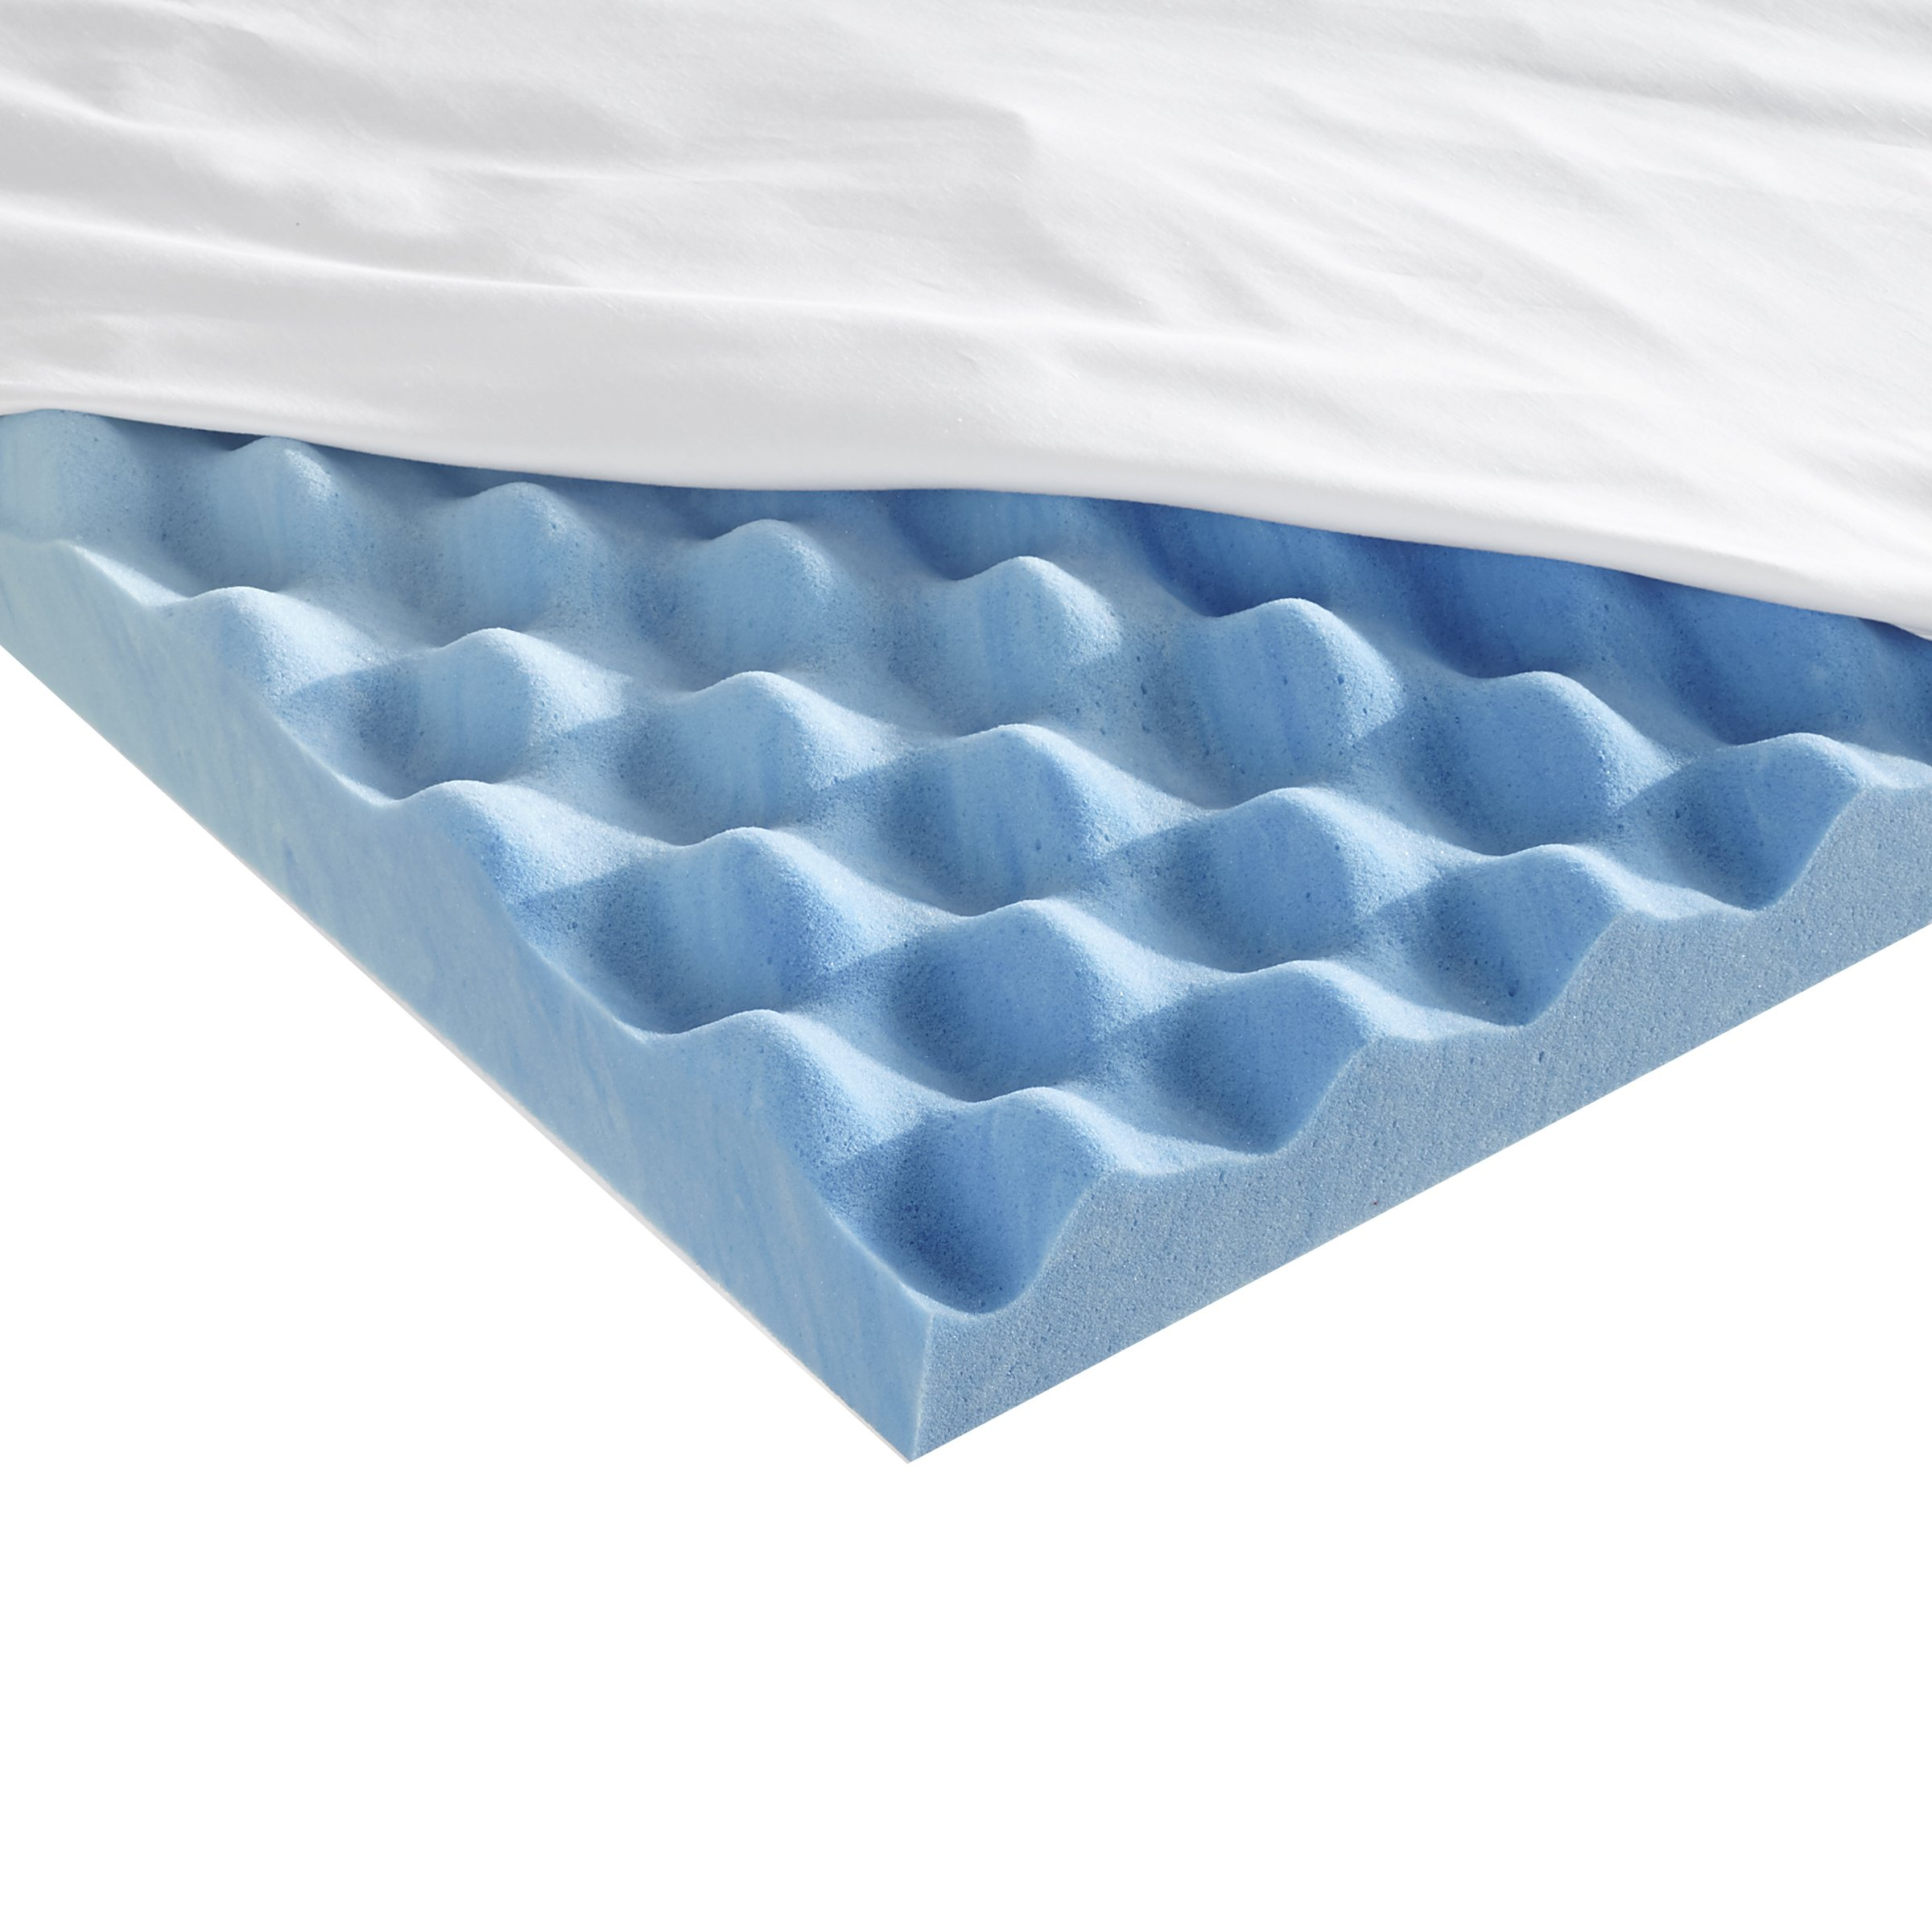 Sleep Innovations 3-inch Gel Memory Foam Mattress Topper with Air Channels and Cotton Cover, Made in the USA with a 10-Year Warranty - Full Size